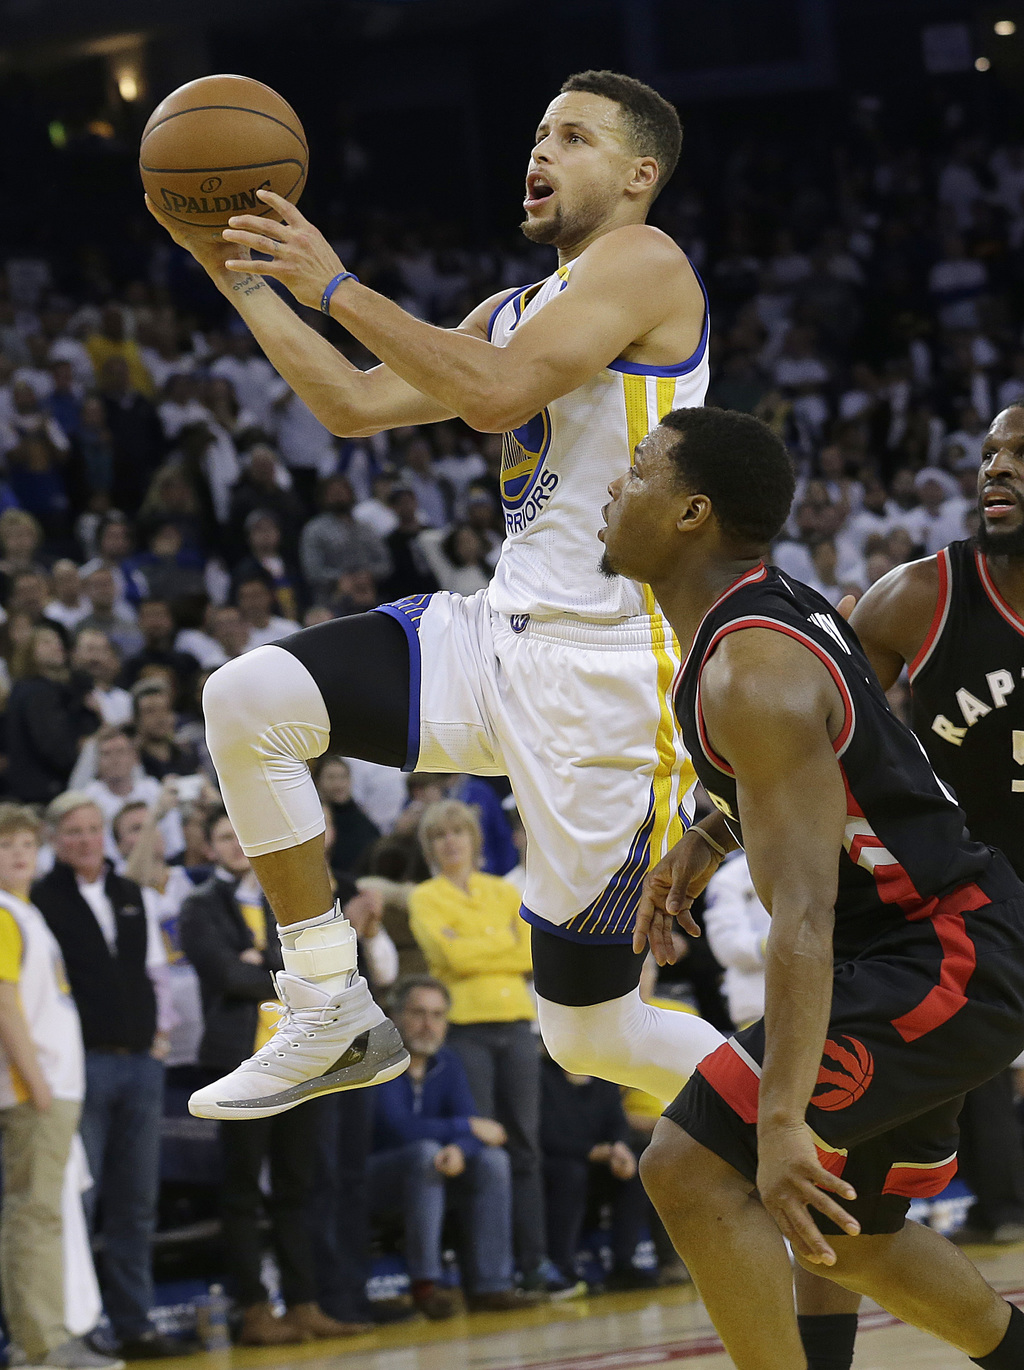 Golden State Warriors guard Stephen Curry, left, shoots against Toronto Raptors guard Kyle Lowry during the second half of an NBA baske...